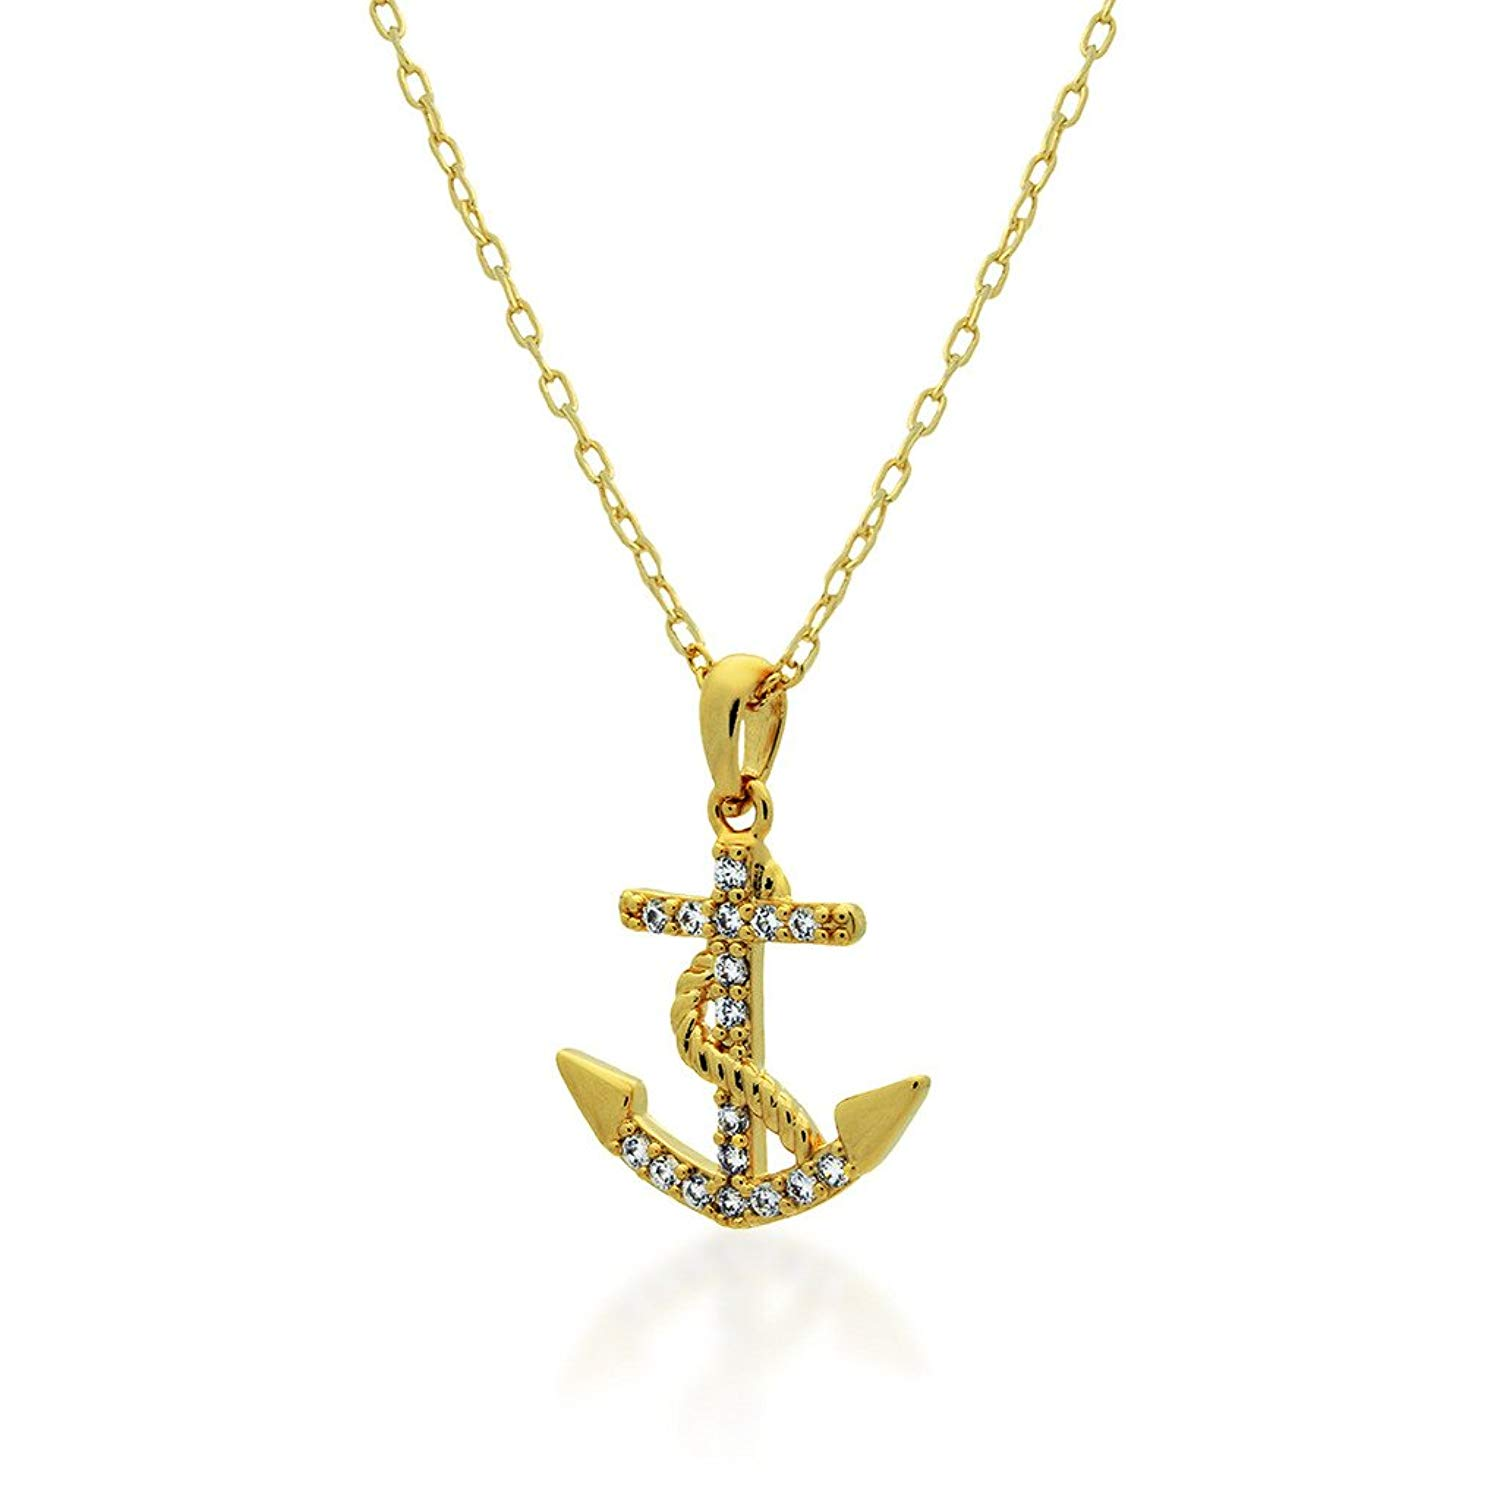 Gold Toned Anchor Pendant Necklace, Sweet Tiny Anchor Necklace, Stylish Modern Womens Jewelry